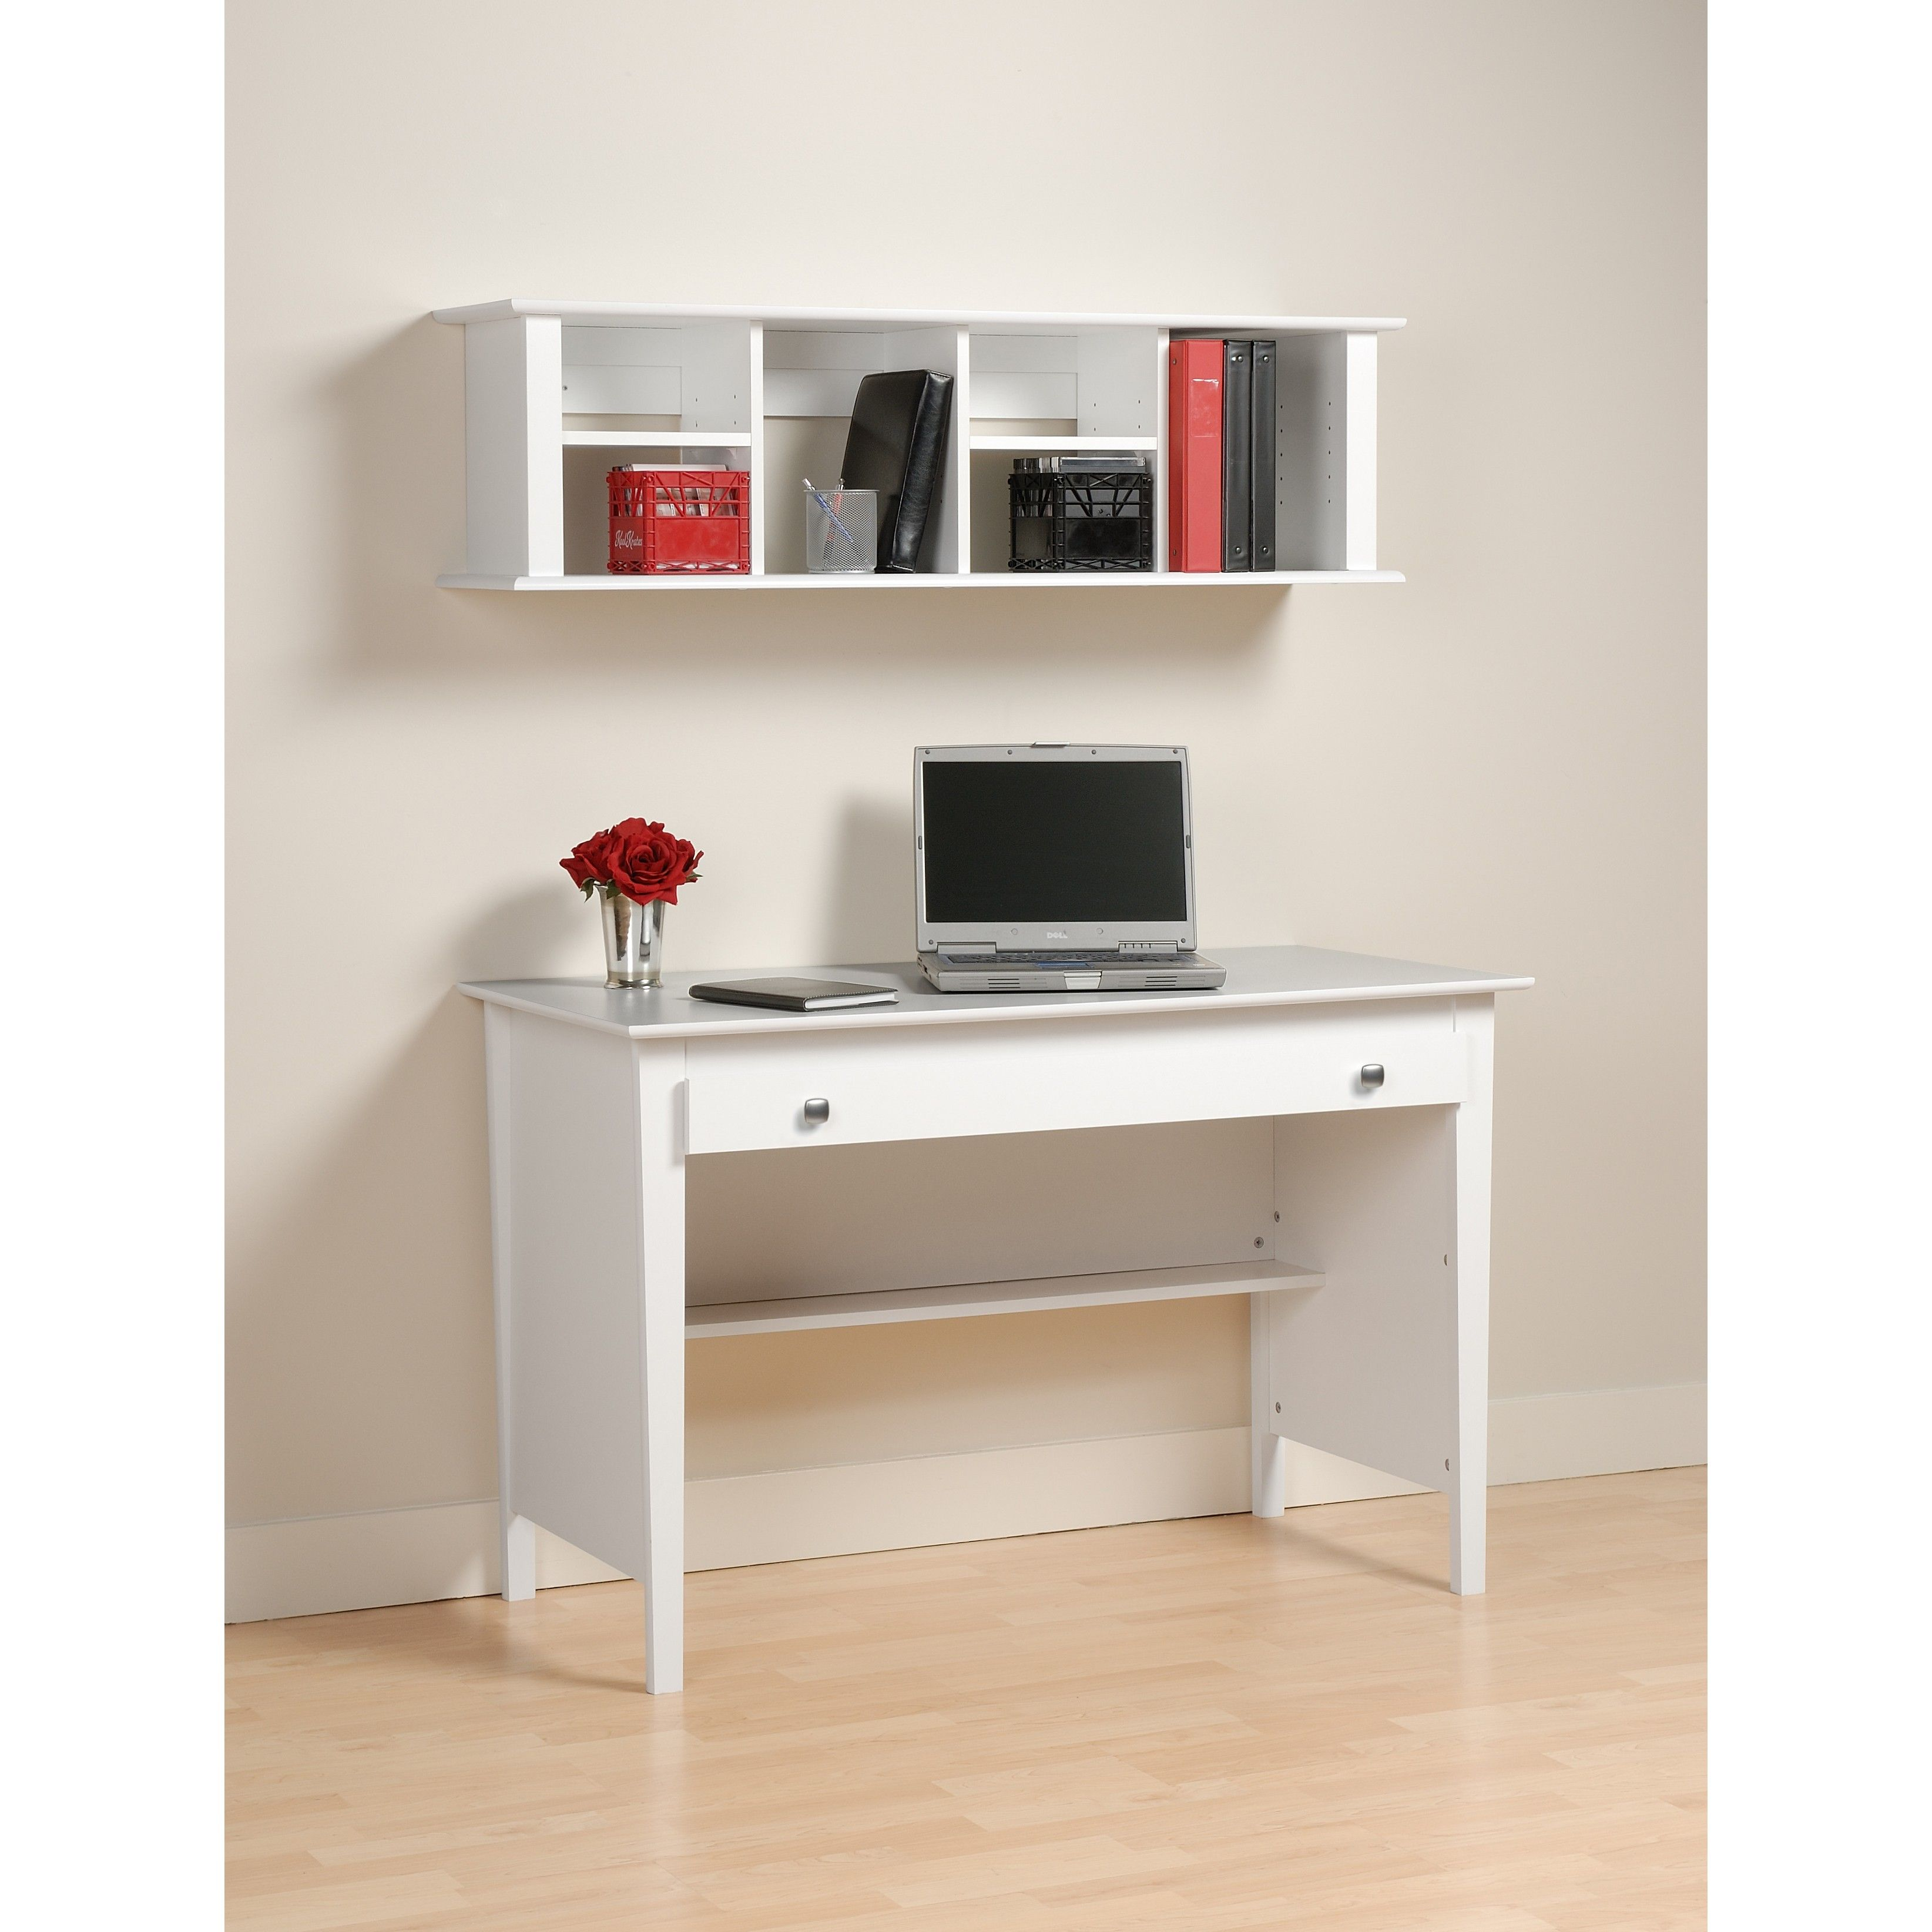 Furniture Interesting Design Computer Table Plans Astounding Desk  Affordable Home Desks With White. famous interior